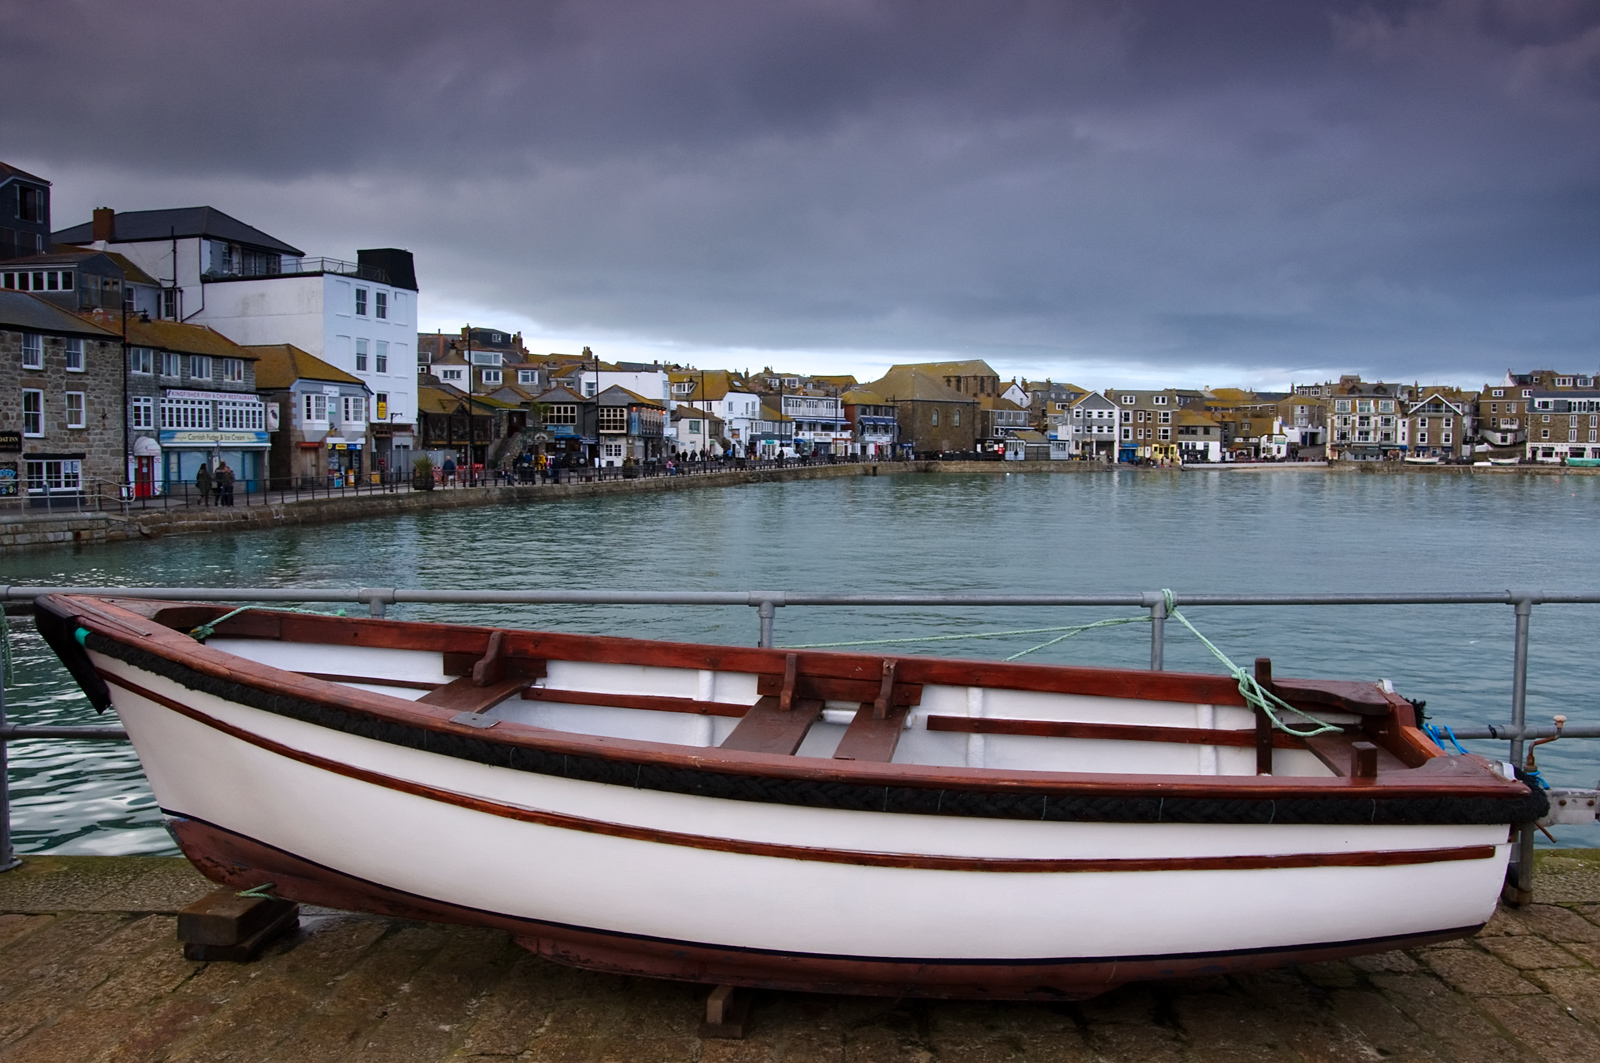 st ives chat Stives (siv) share price, charts, trades & the uk's most popular discussion forums free forex prices, toplists, indices and lots more.